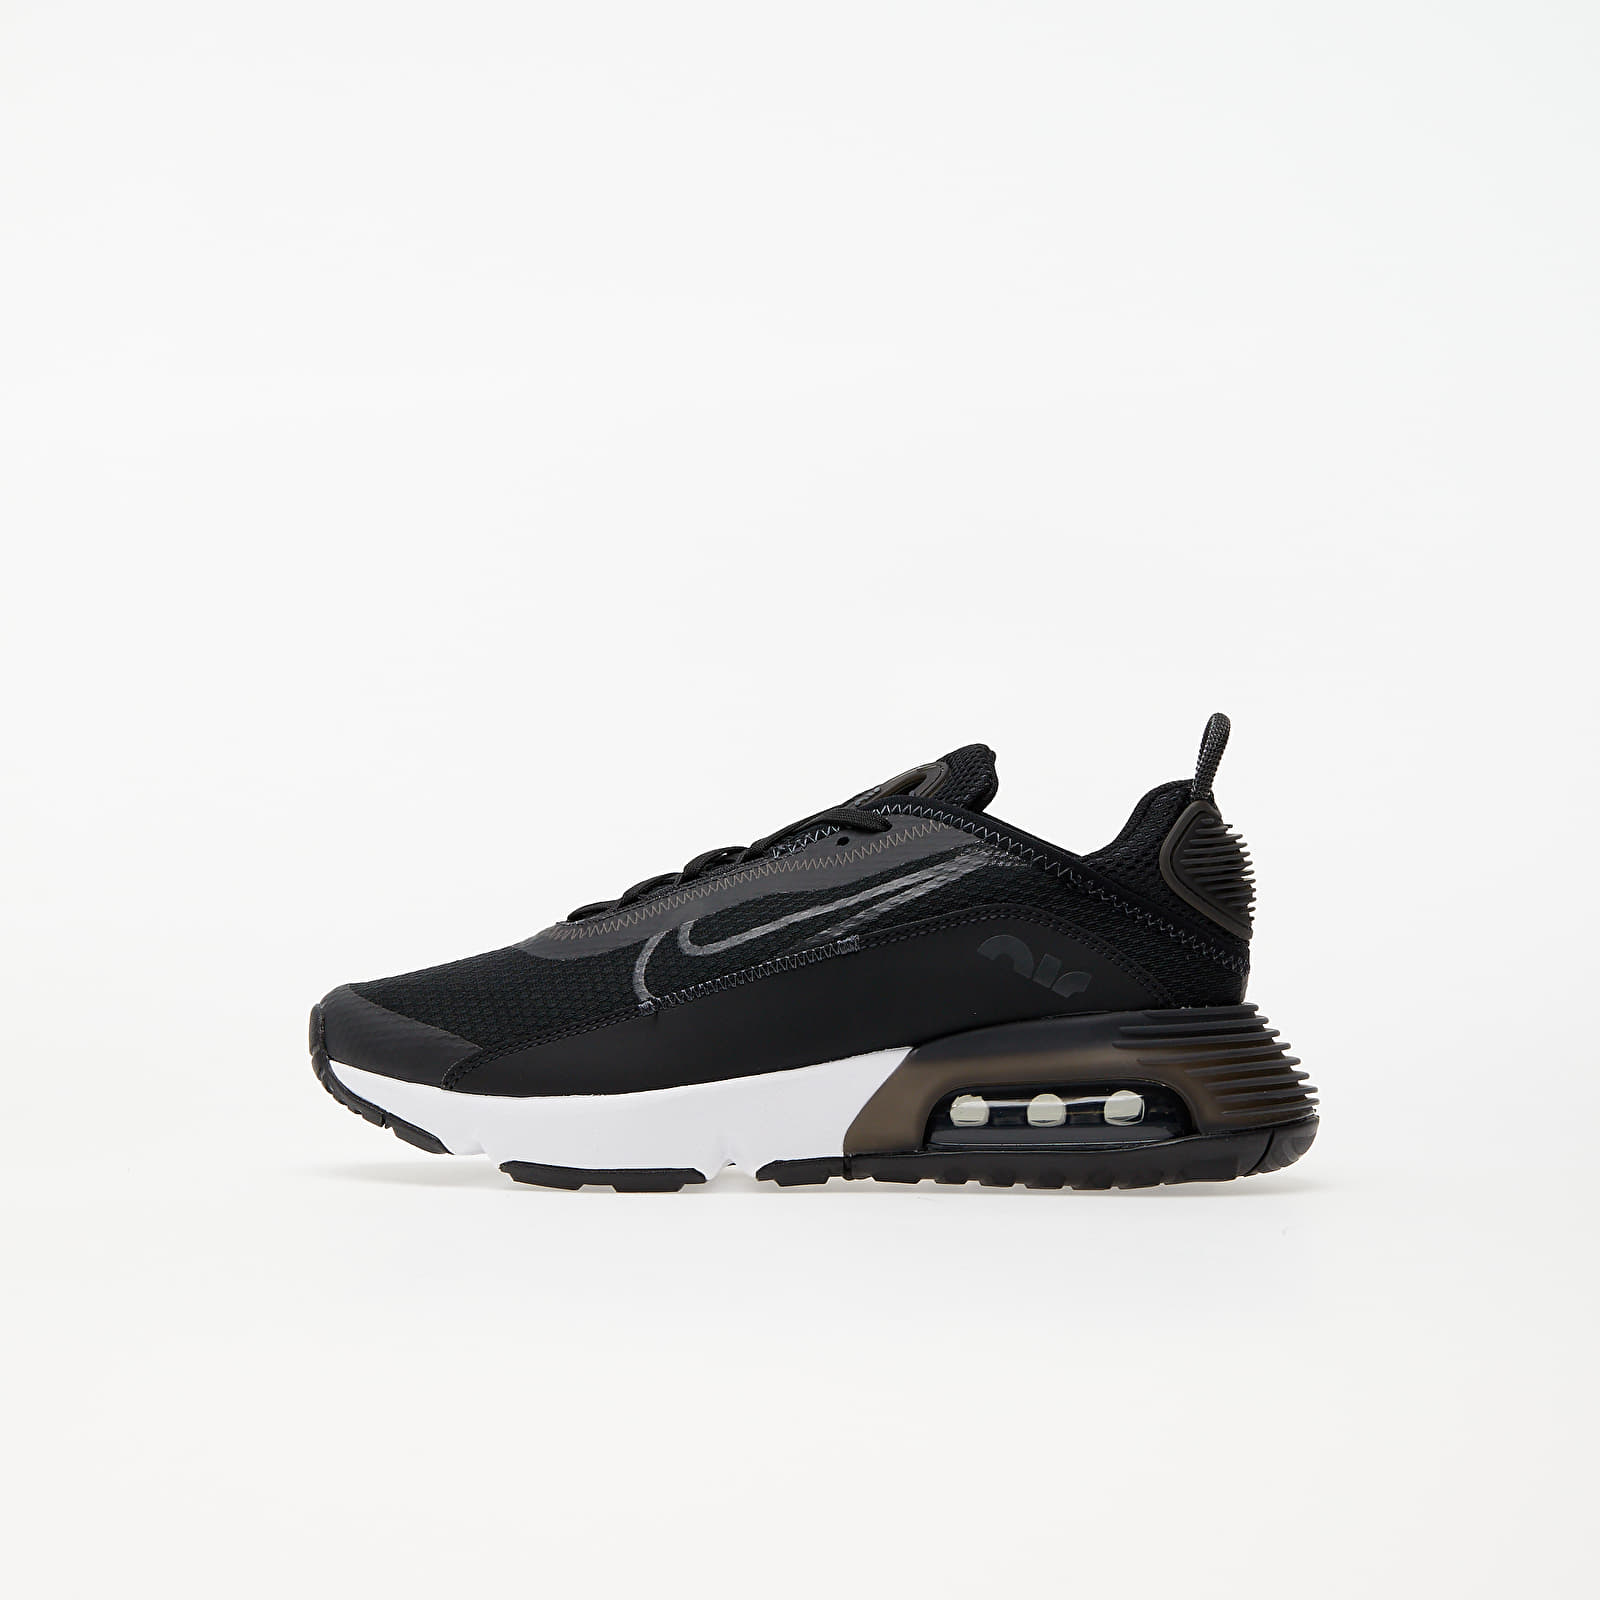 Nike Air Max 2090 GS Black/ Anthracite-White-Wolf Grey EUR 40